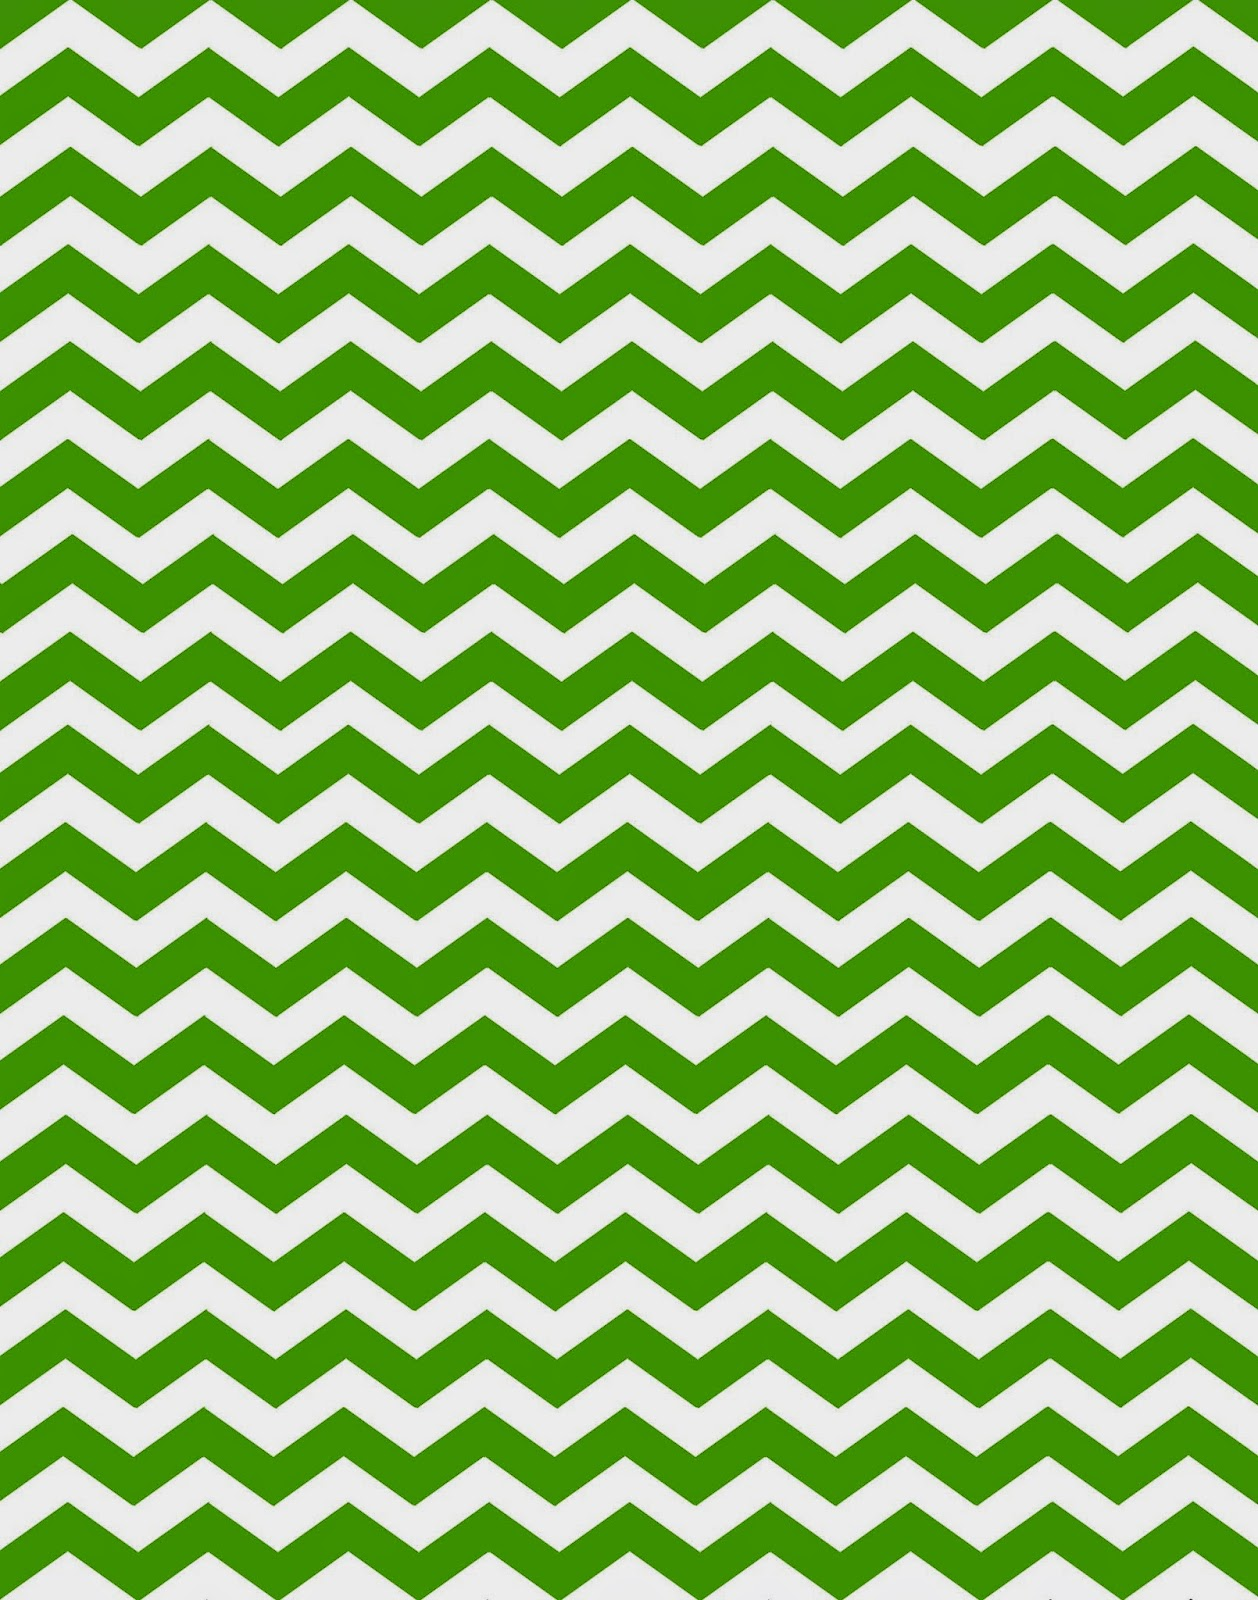 http://3.bp.blogspot.com/-SexN4nn4USc/U7QNMTbBDeI/AAAAAAAAopY/rRu6w5Fo6ZQ/s1600/chevron+background+lime+bright+kiwi+neon+green+yellow.jpg